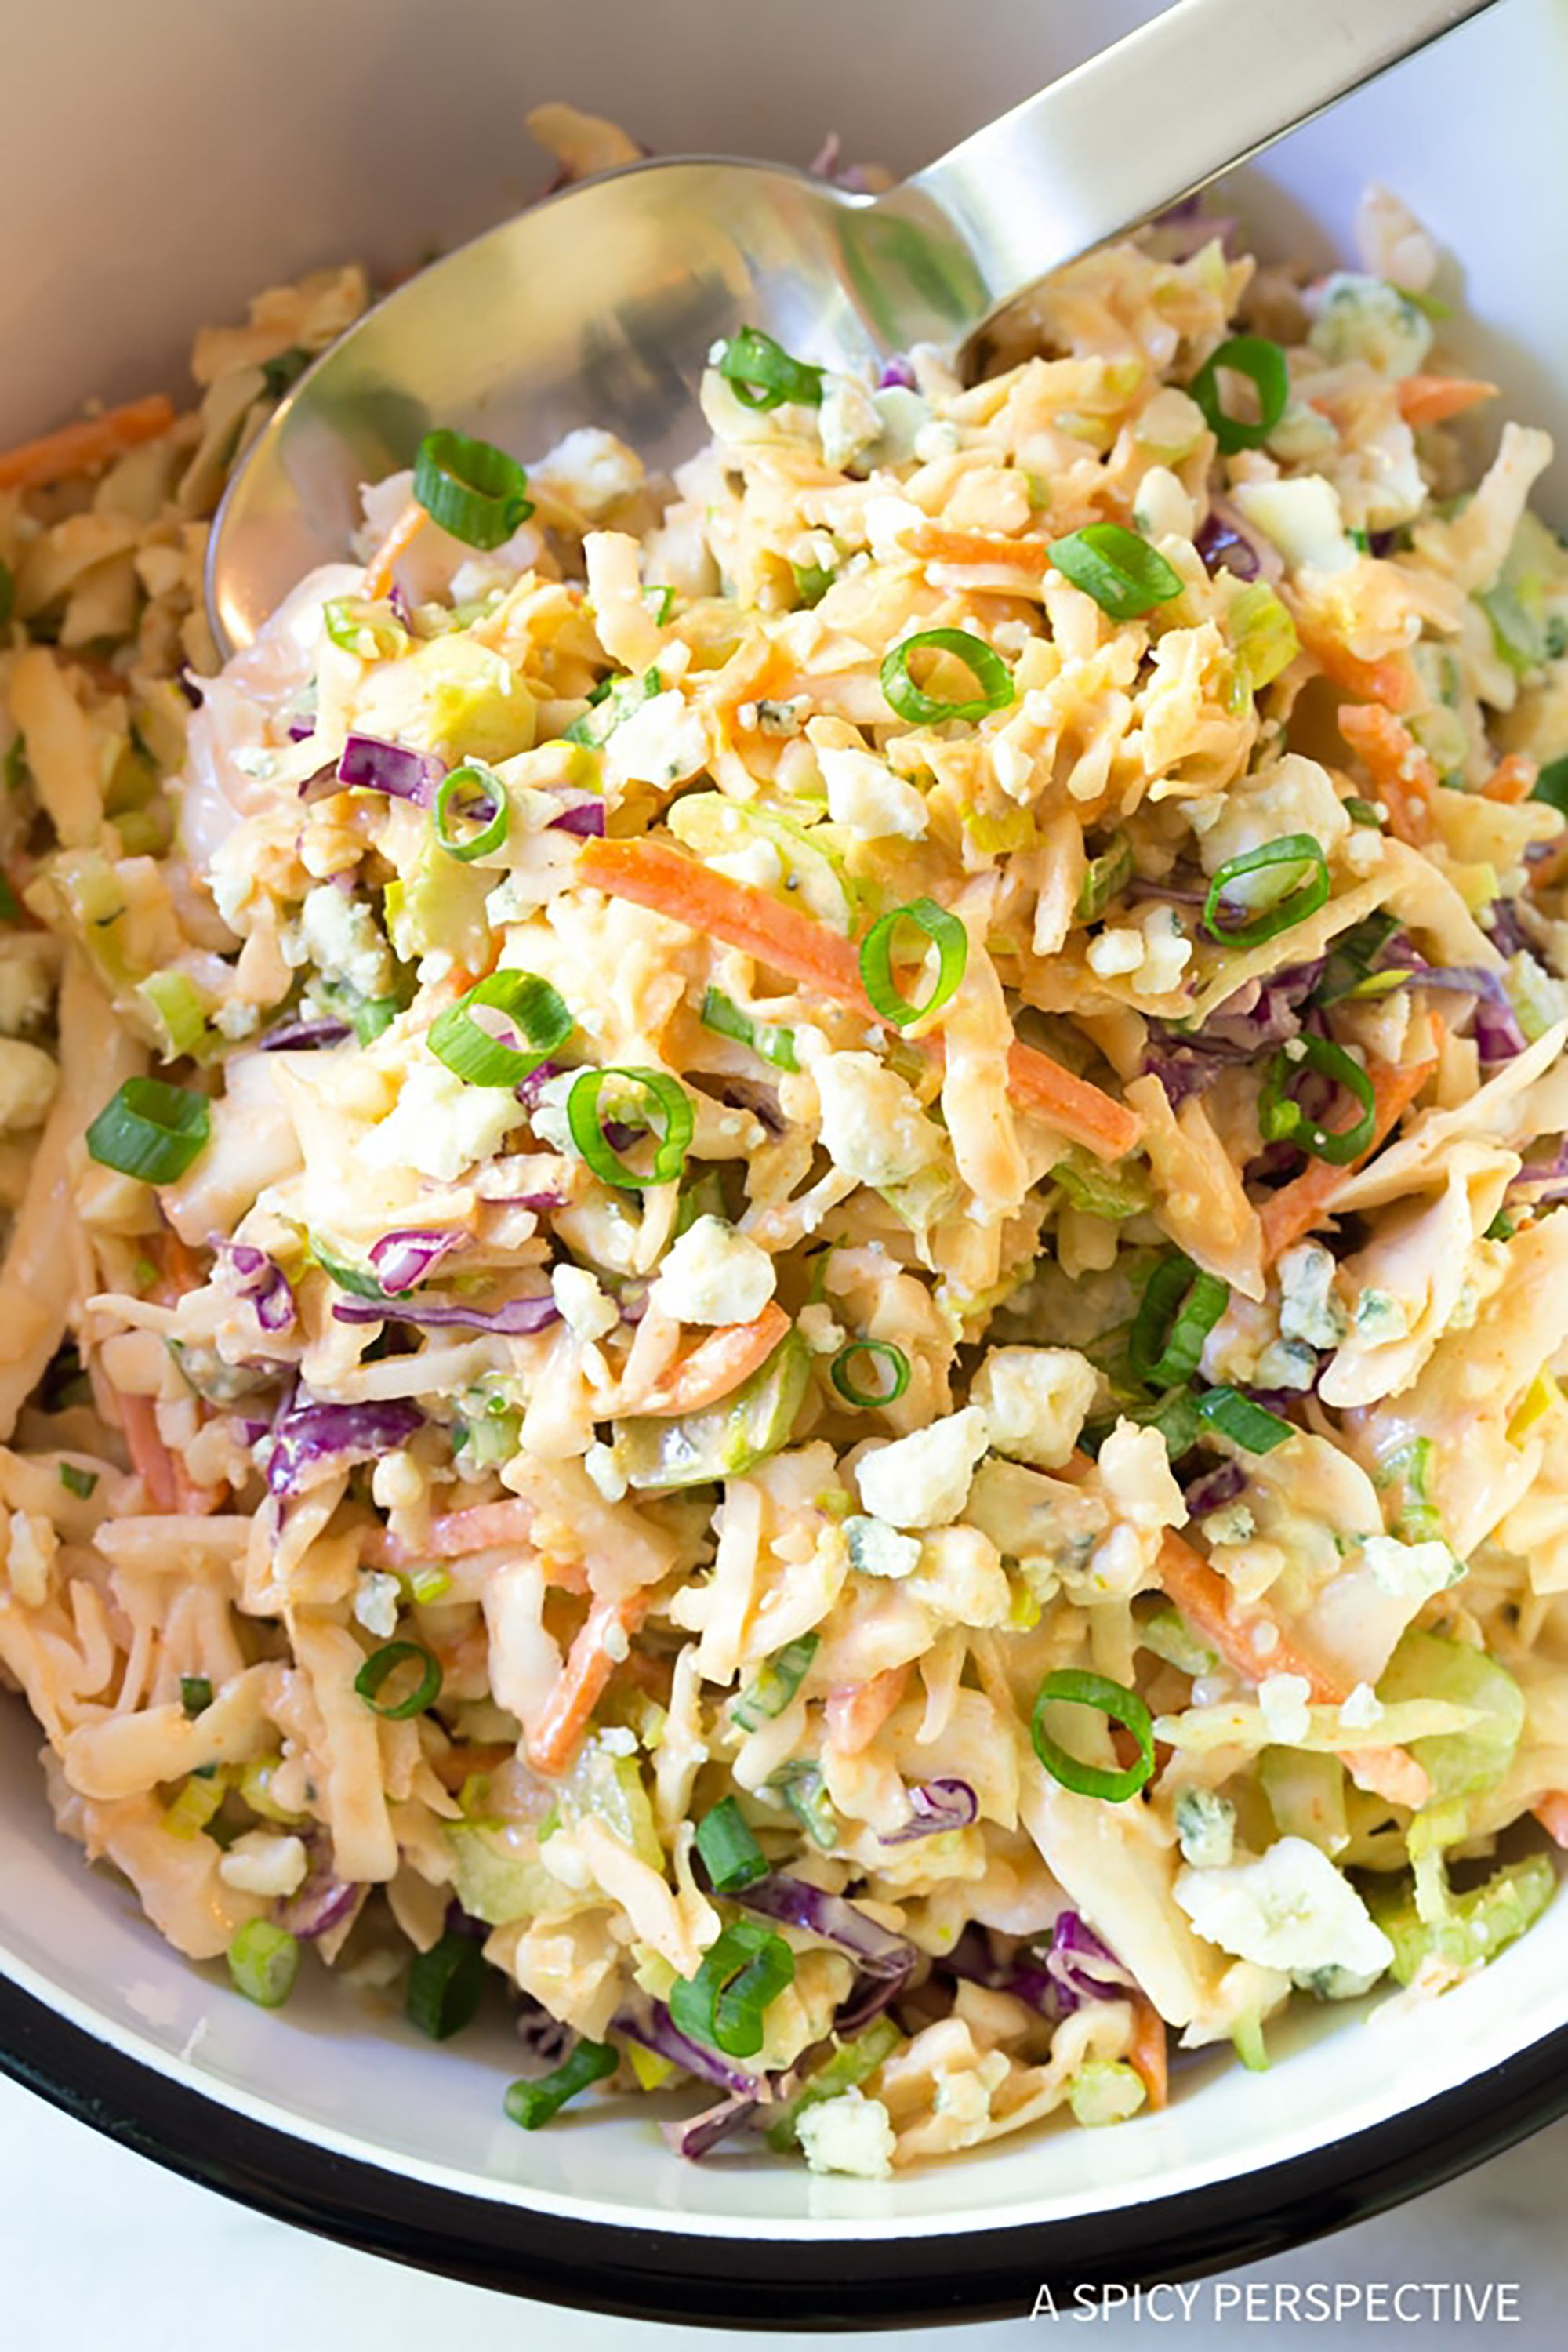 14 Refreshing Coleslaw Recipes to Make This Summer